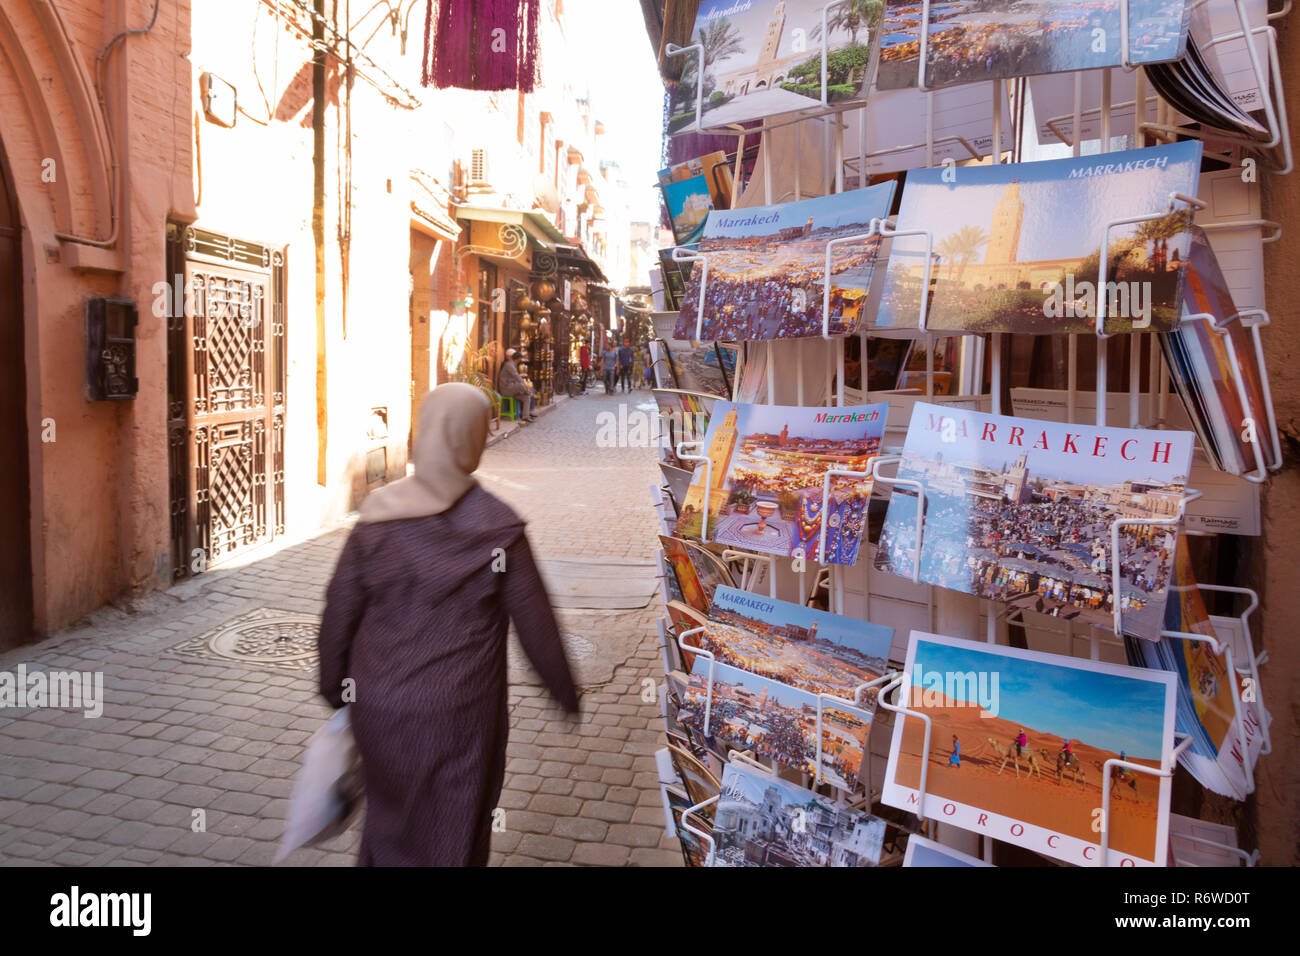 Marrakech tourism - a local woman walks past a shop selling postcards in the souk, Marrakesh Medina, Morocco North Africa Stock Photo